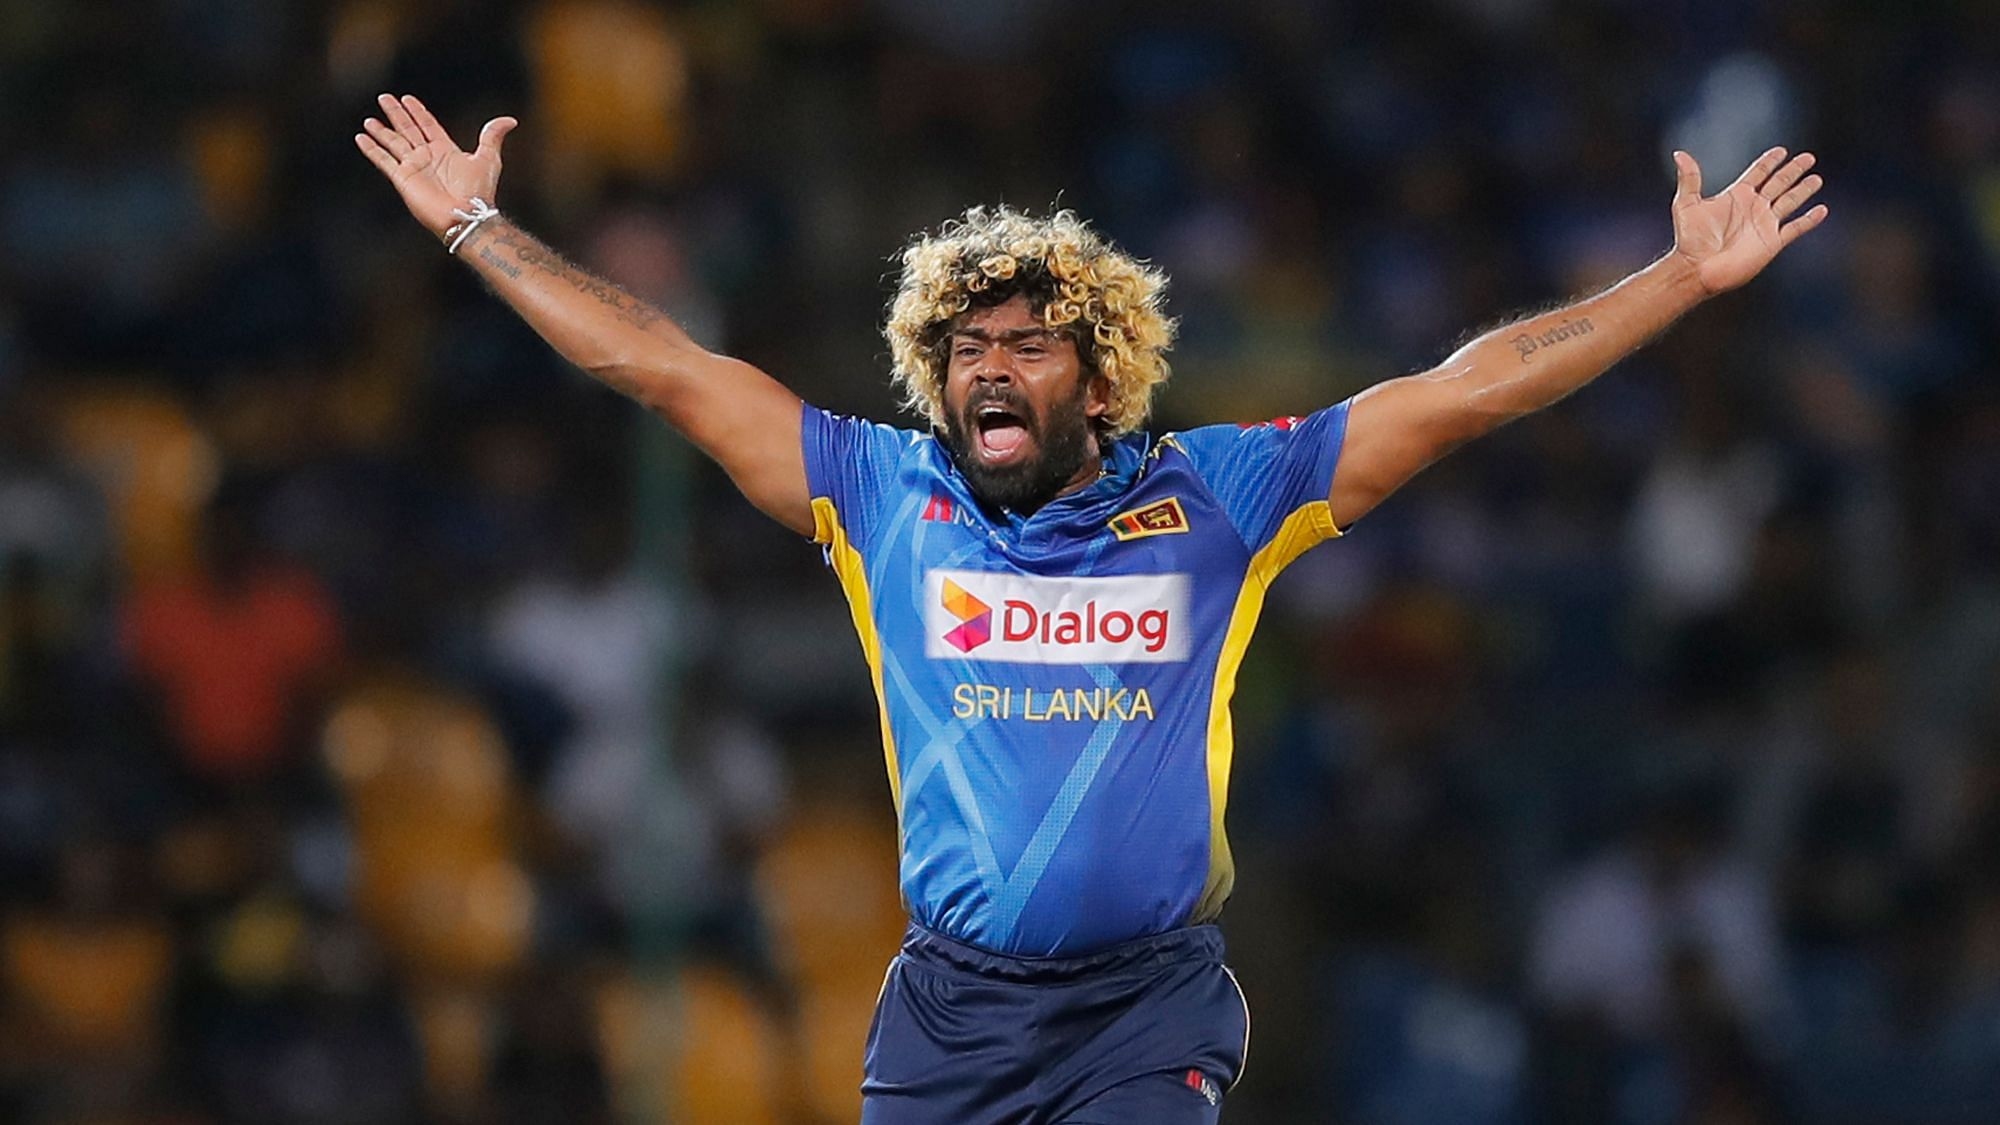 Lasith Malinga Picks 4 Wkts In 4 Balls Breaks Another T20i Record